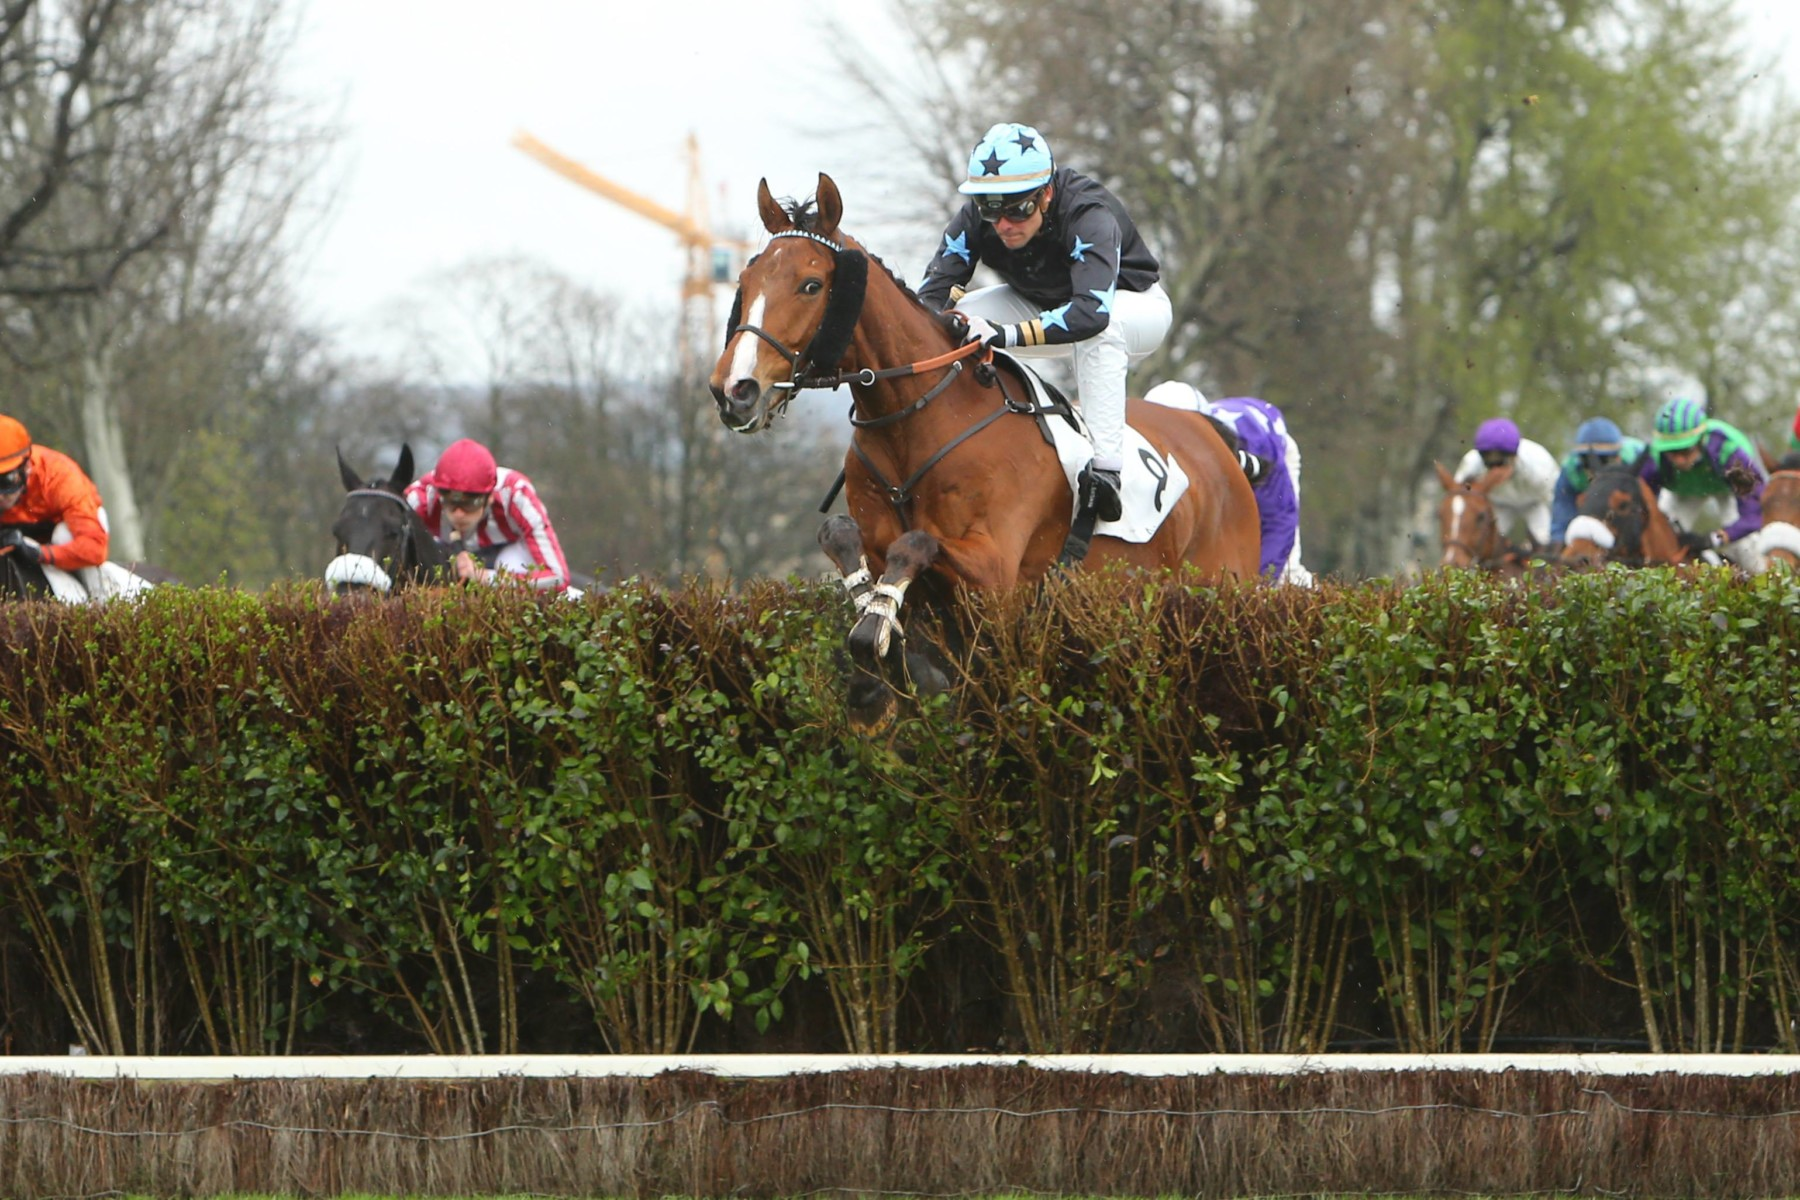 PRIX WILLIAM KNAPP THORN - Monsamou tente sa chance sur le steeple